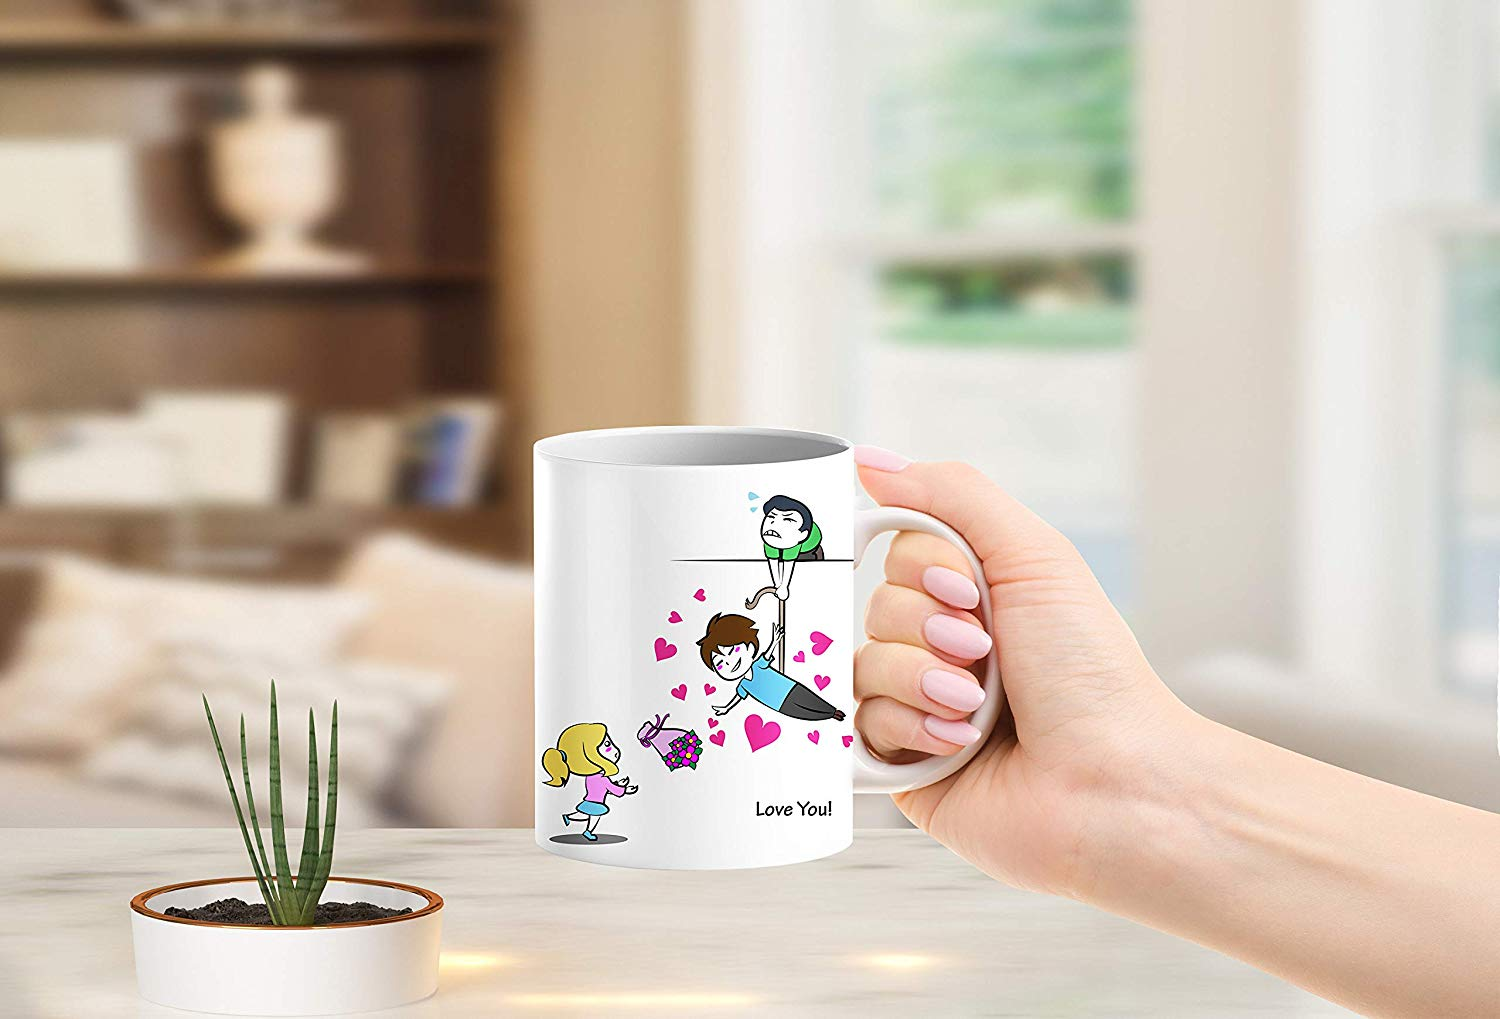 Heat Sensitive Color Changing Coffee Mug Funny Coffee Cup Flying Lovely Cartoon Couple Design Funny Gift Idea B07D21S68R 4